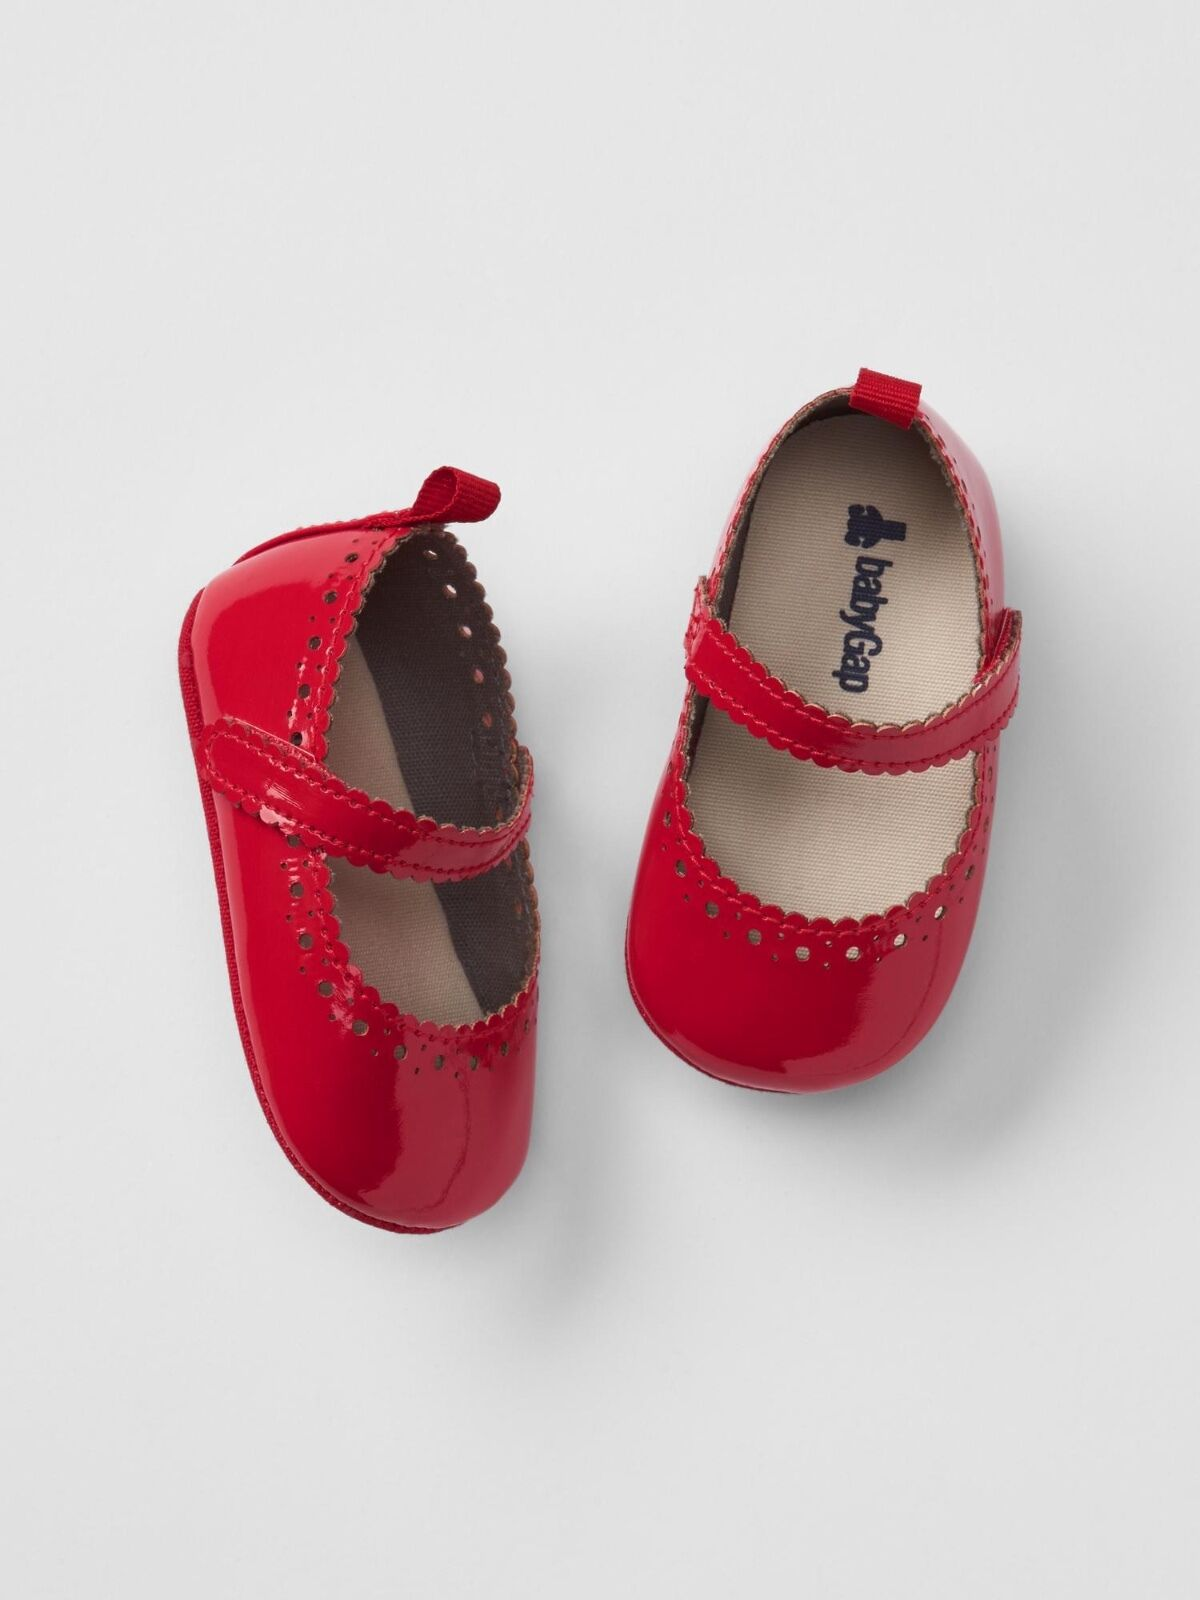 Gap Baby Girl Size 3 6 Months Patent Leather Red Mary Jane Bow Flats